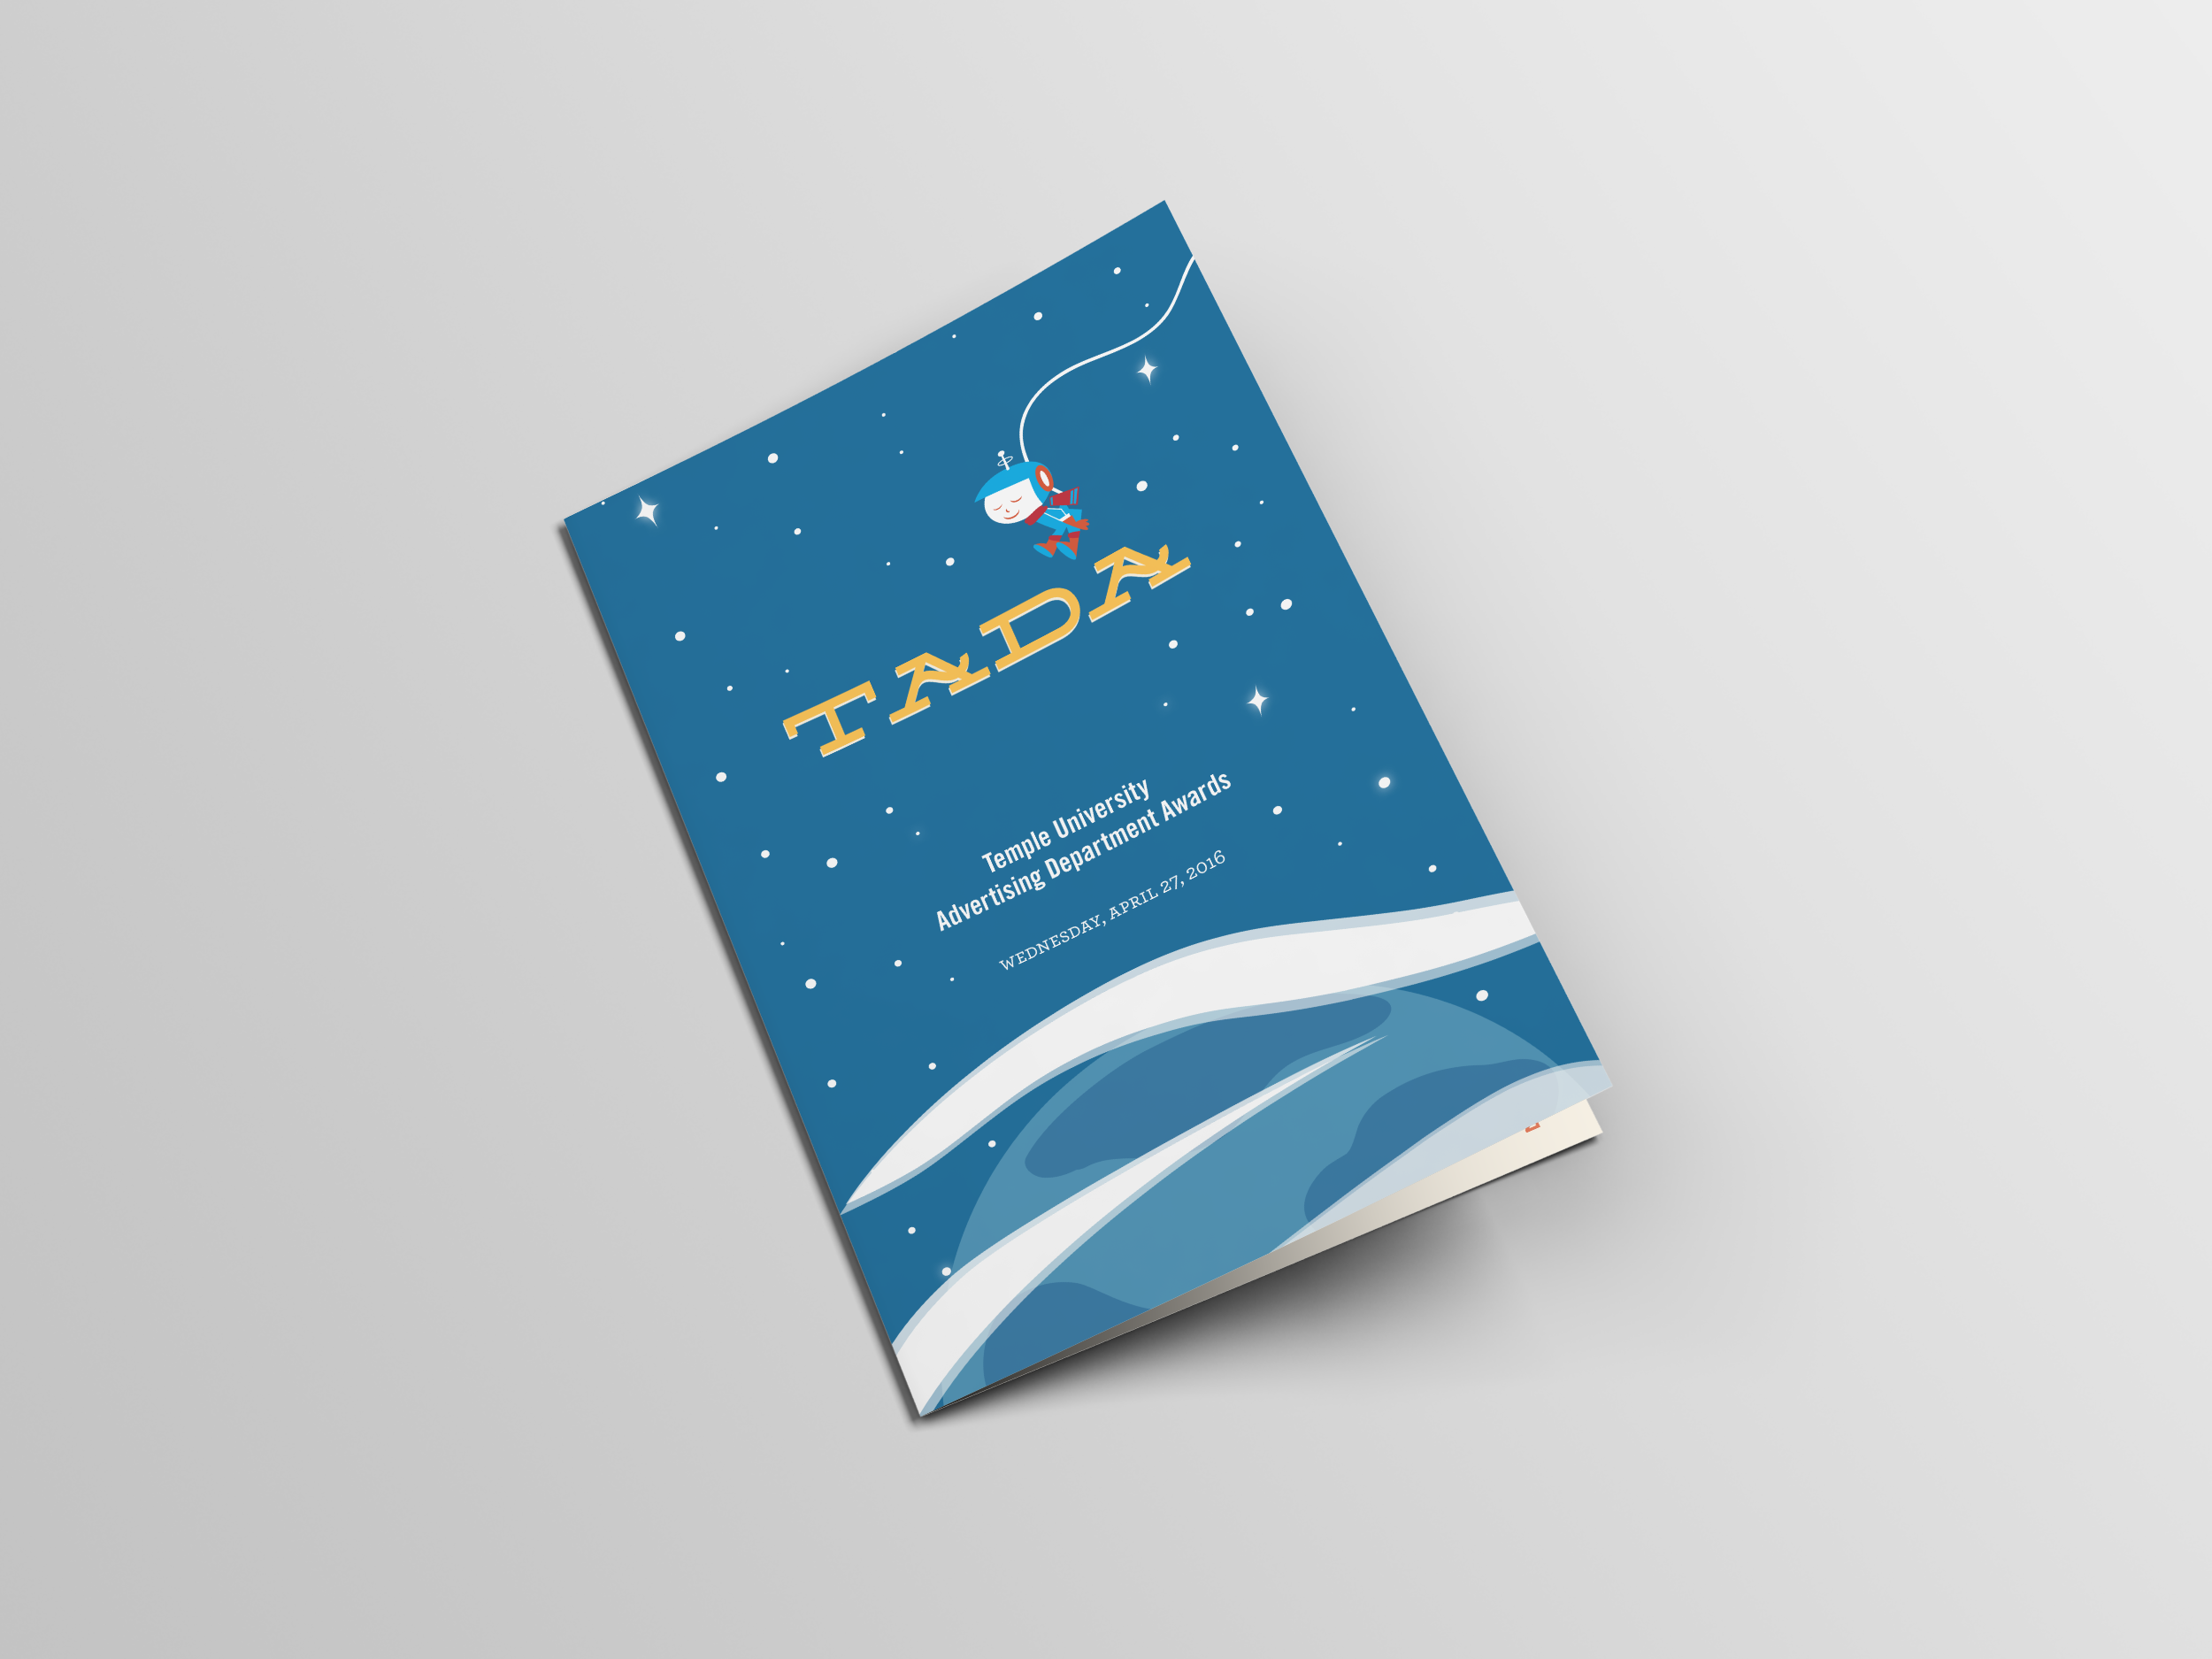 TADA_Booklet_Cover.png